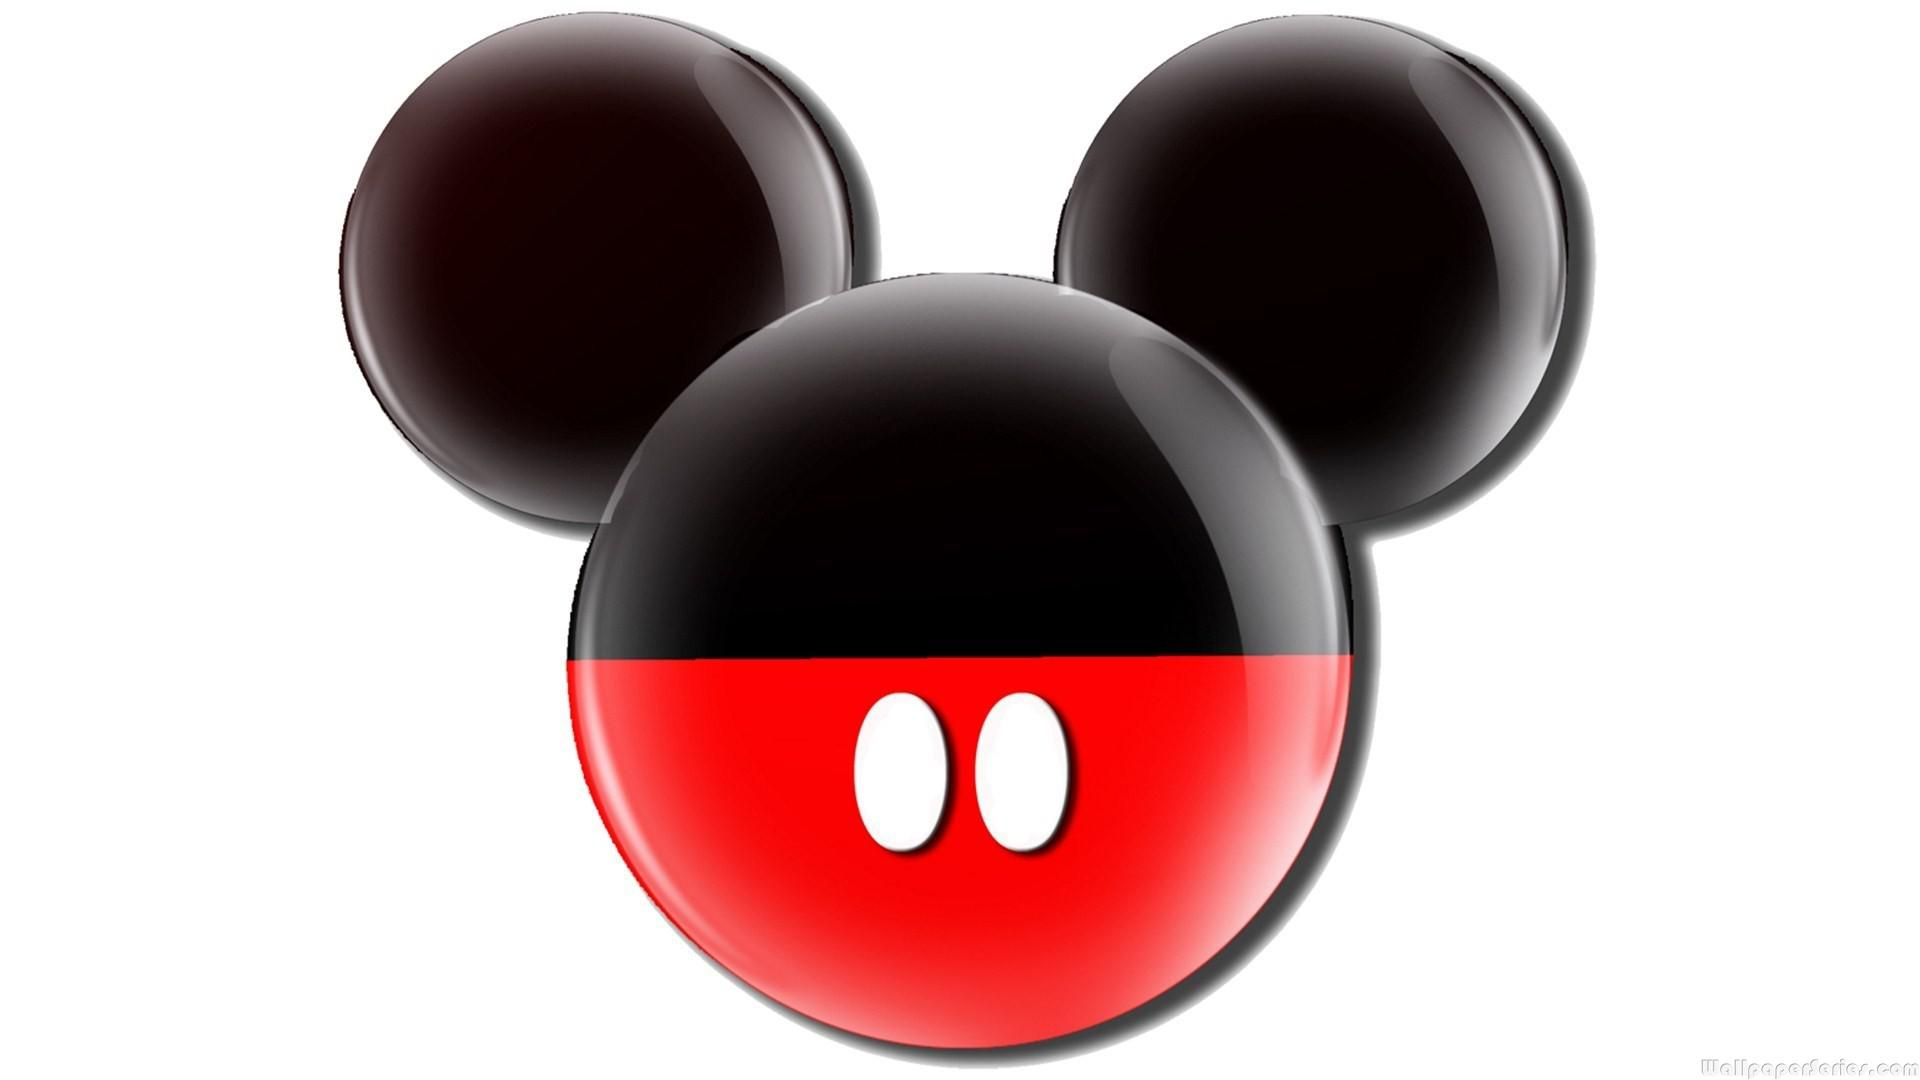 Hd mickey mouse head desktop wallpaper download free